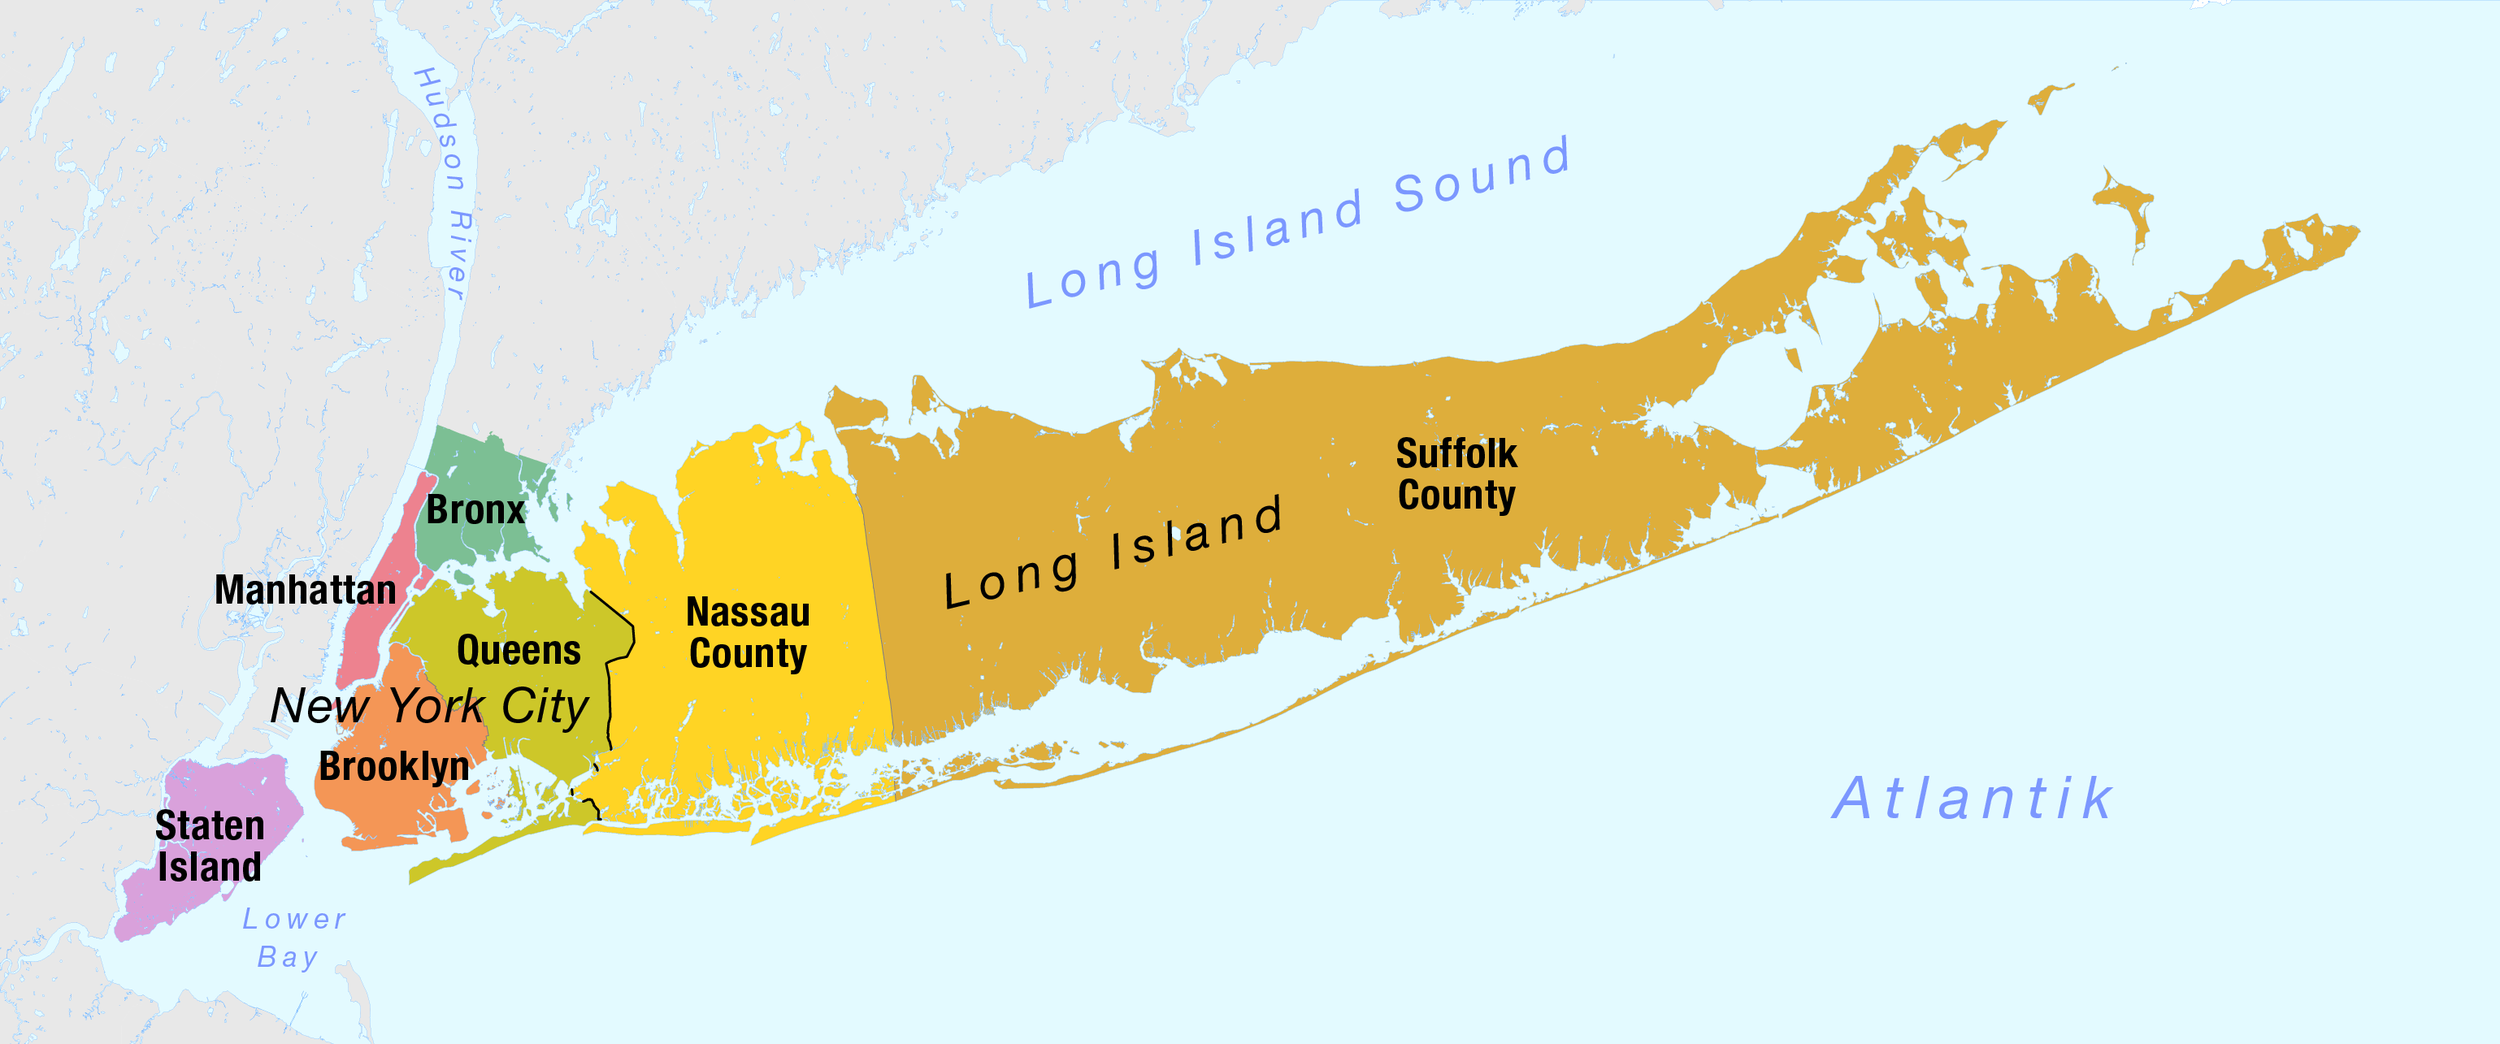 Map_of_the_Boroughs_of_New_York_City_and_the_counties_of_Long_Island.png